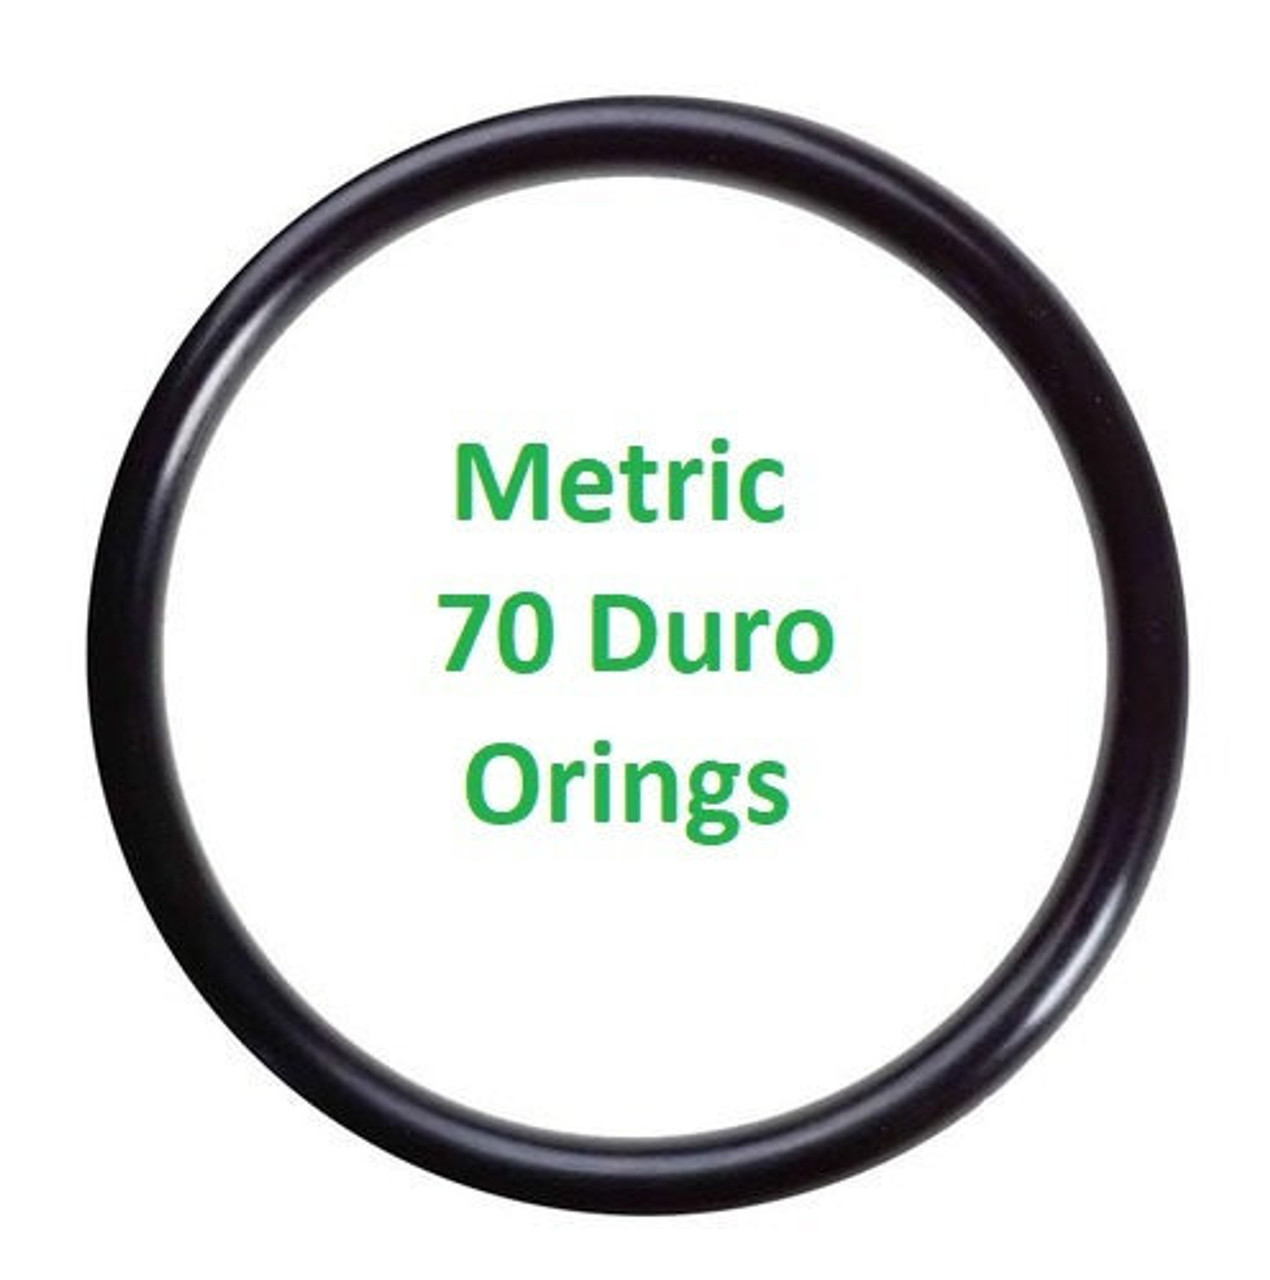 Metric Buna  O-rings 3 x 3mm Price for 25 pcs